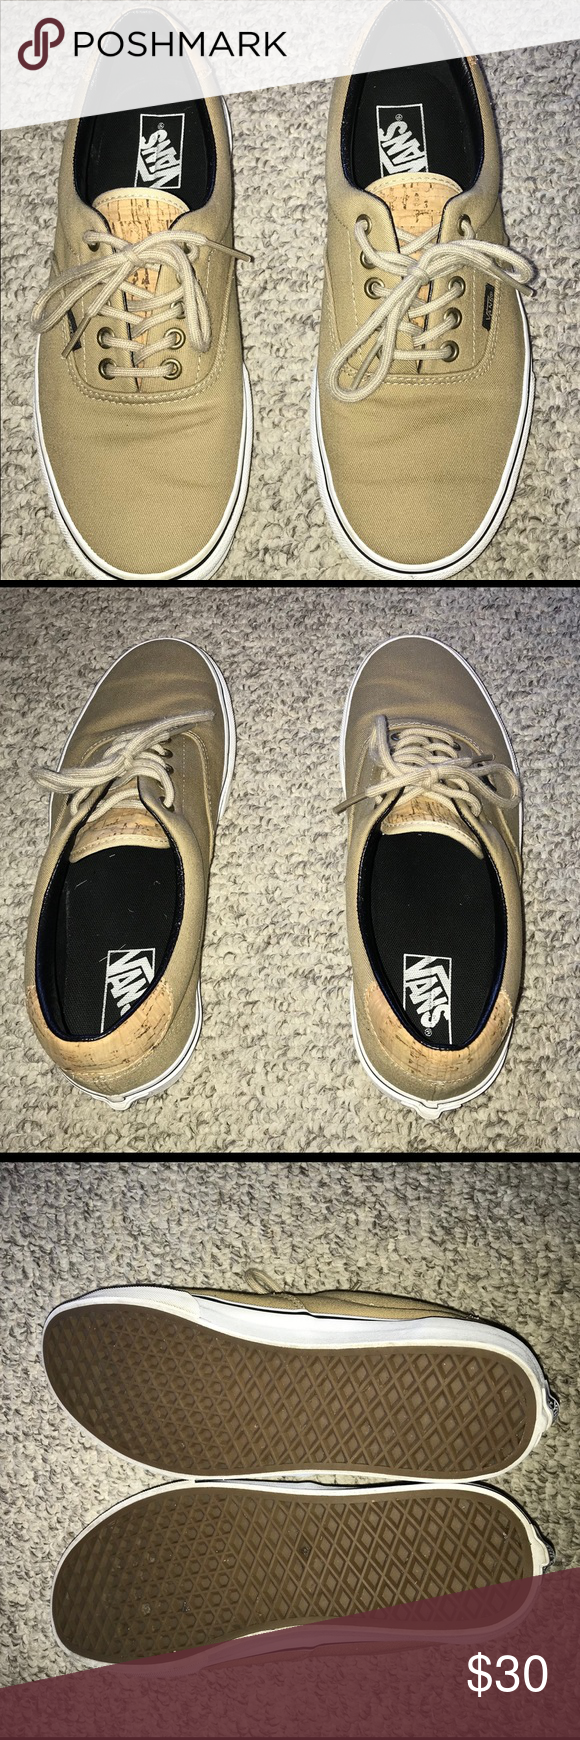 56e11dddfb3 Vans Unisex Era 59 Cork Twill Incense Skate Shoe Great condition. Beige  with cork tongue and upper back. Classic Vans skate shoe great for casual  wear.